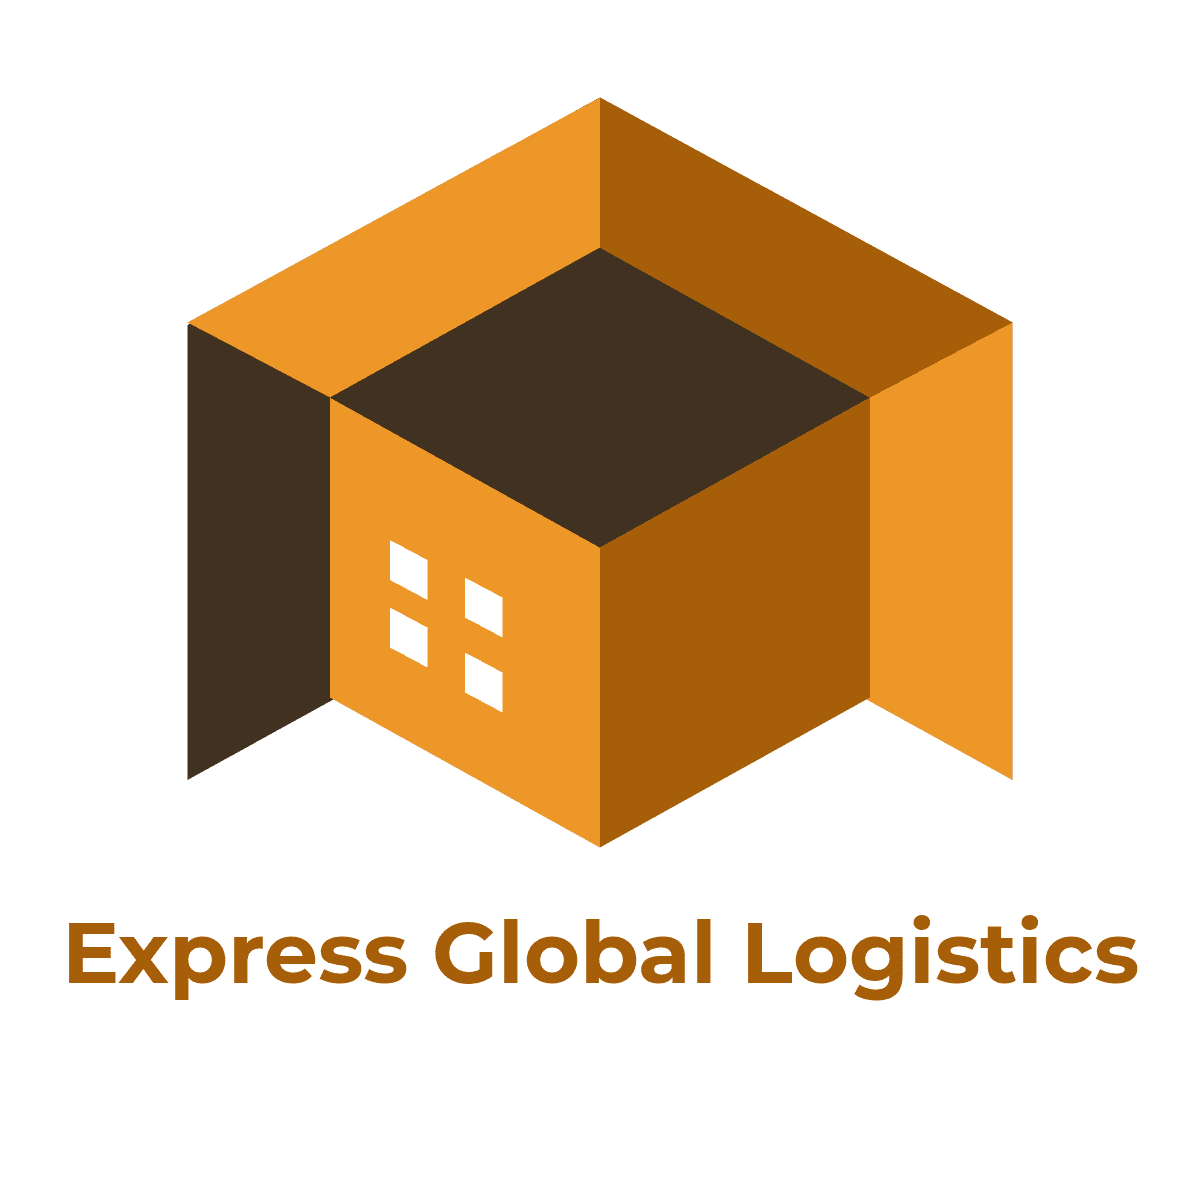 Express Global Logistics